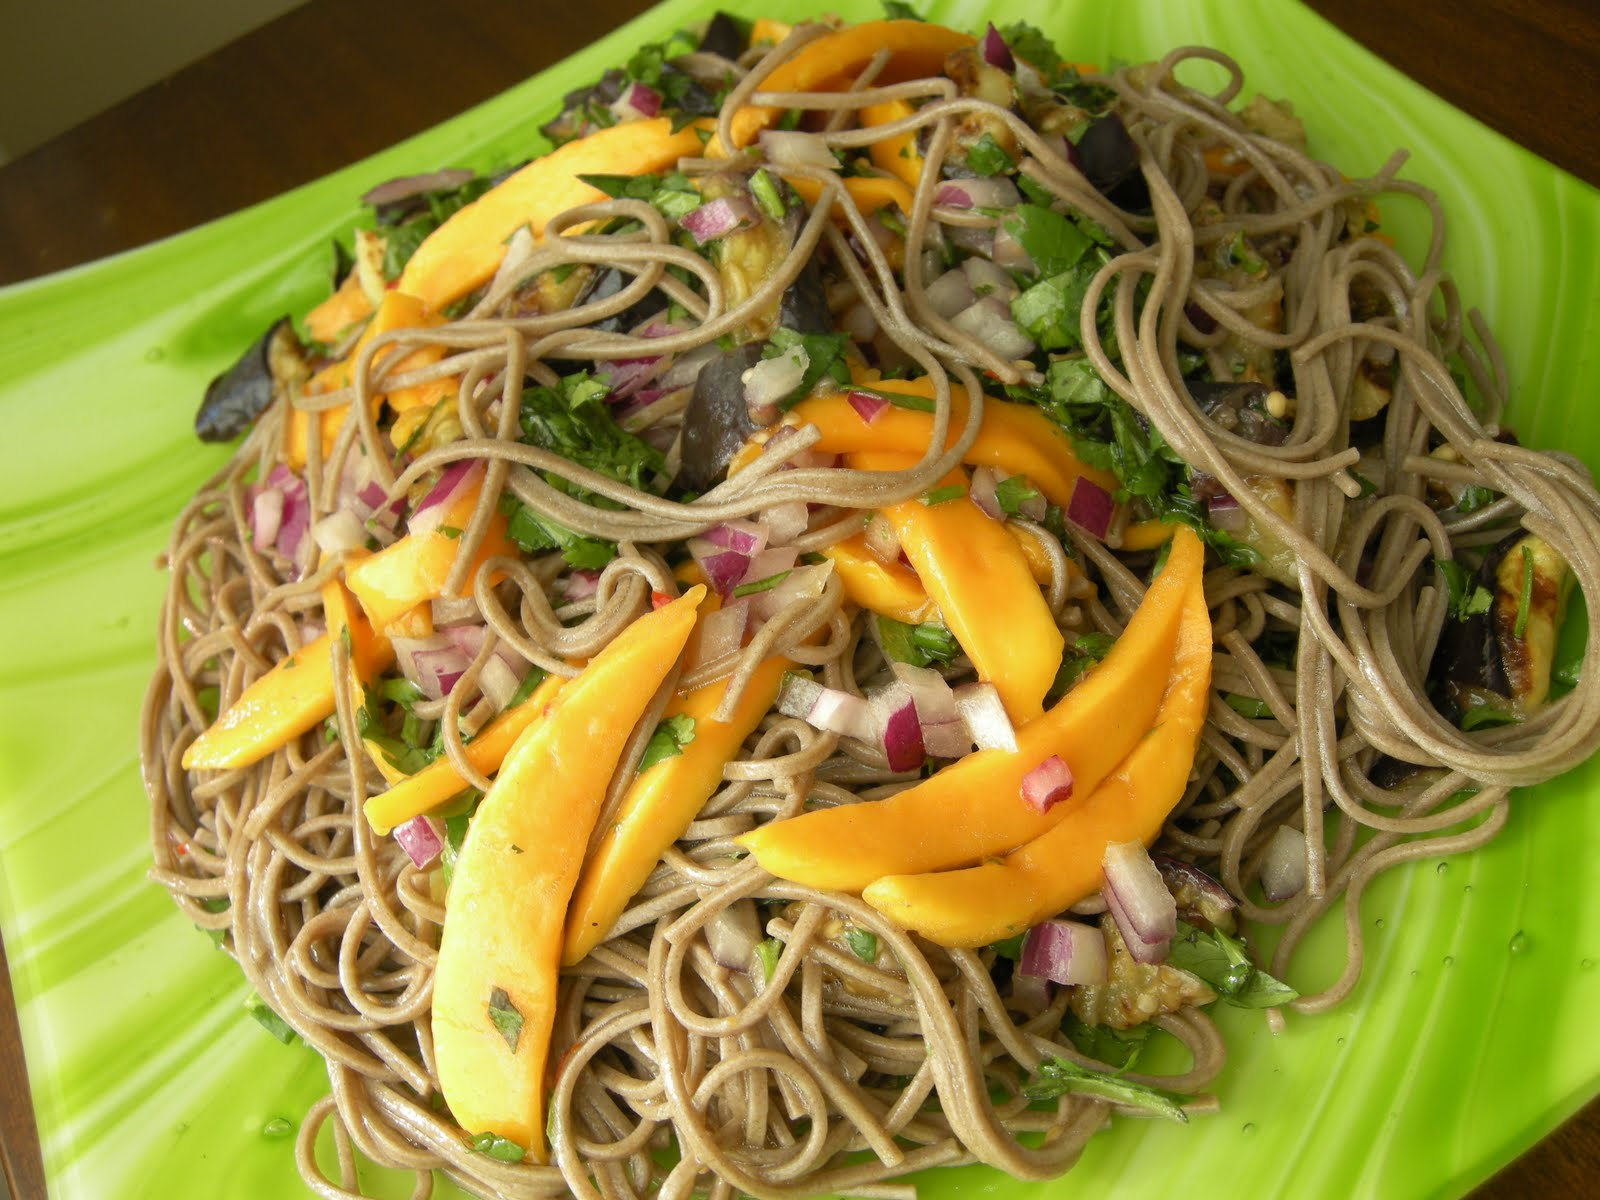 Mary Mary Culinary: Soba noodles with eggplant and mango